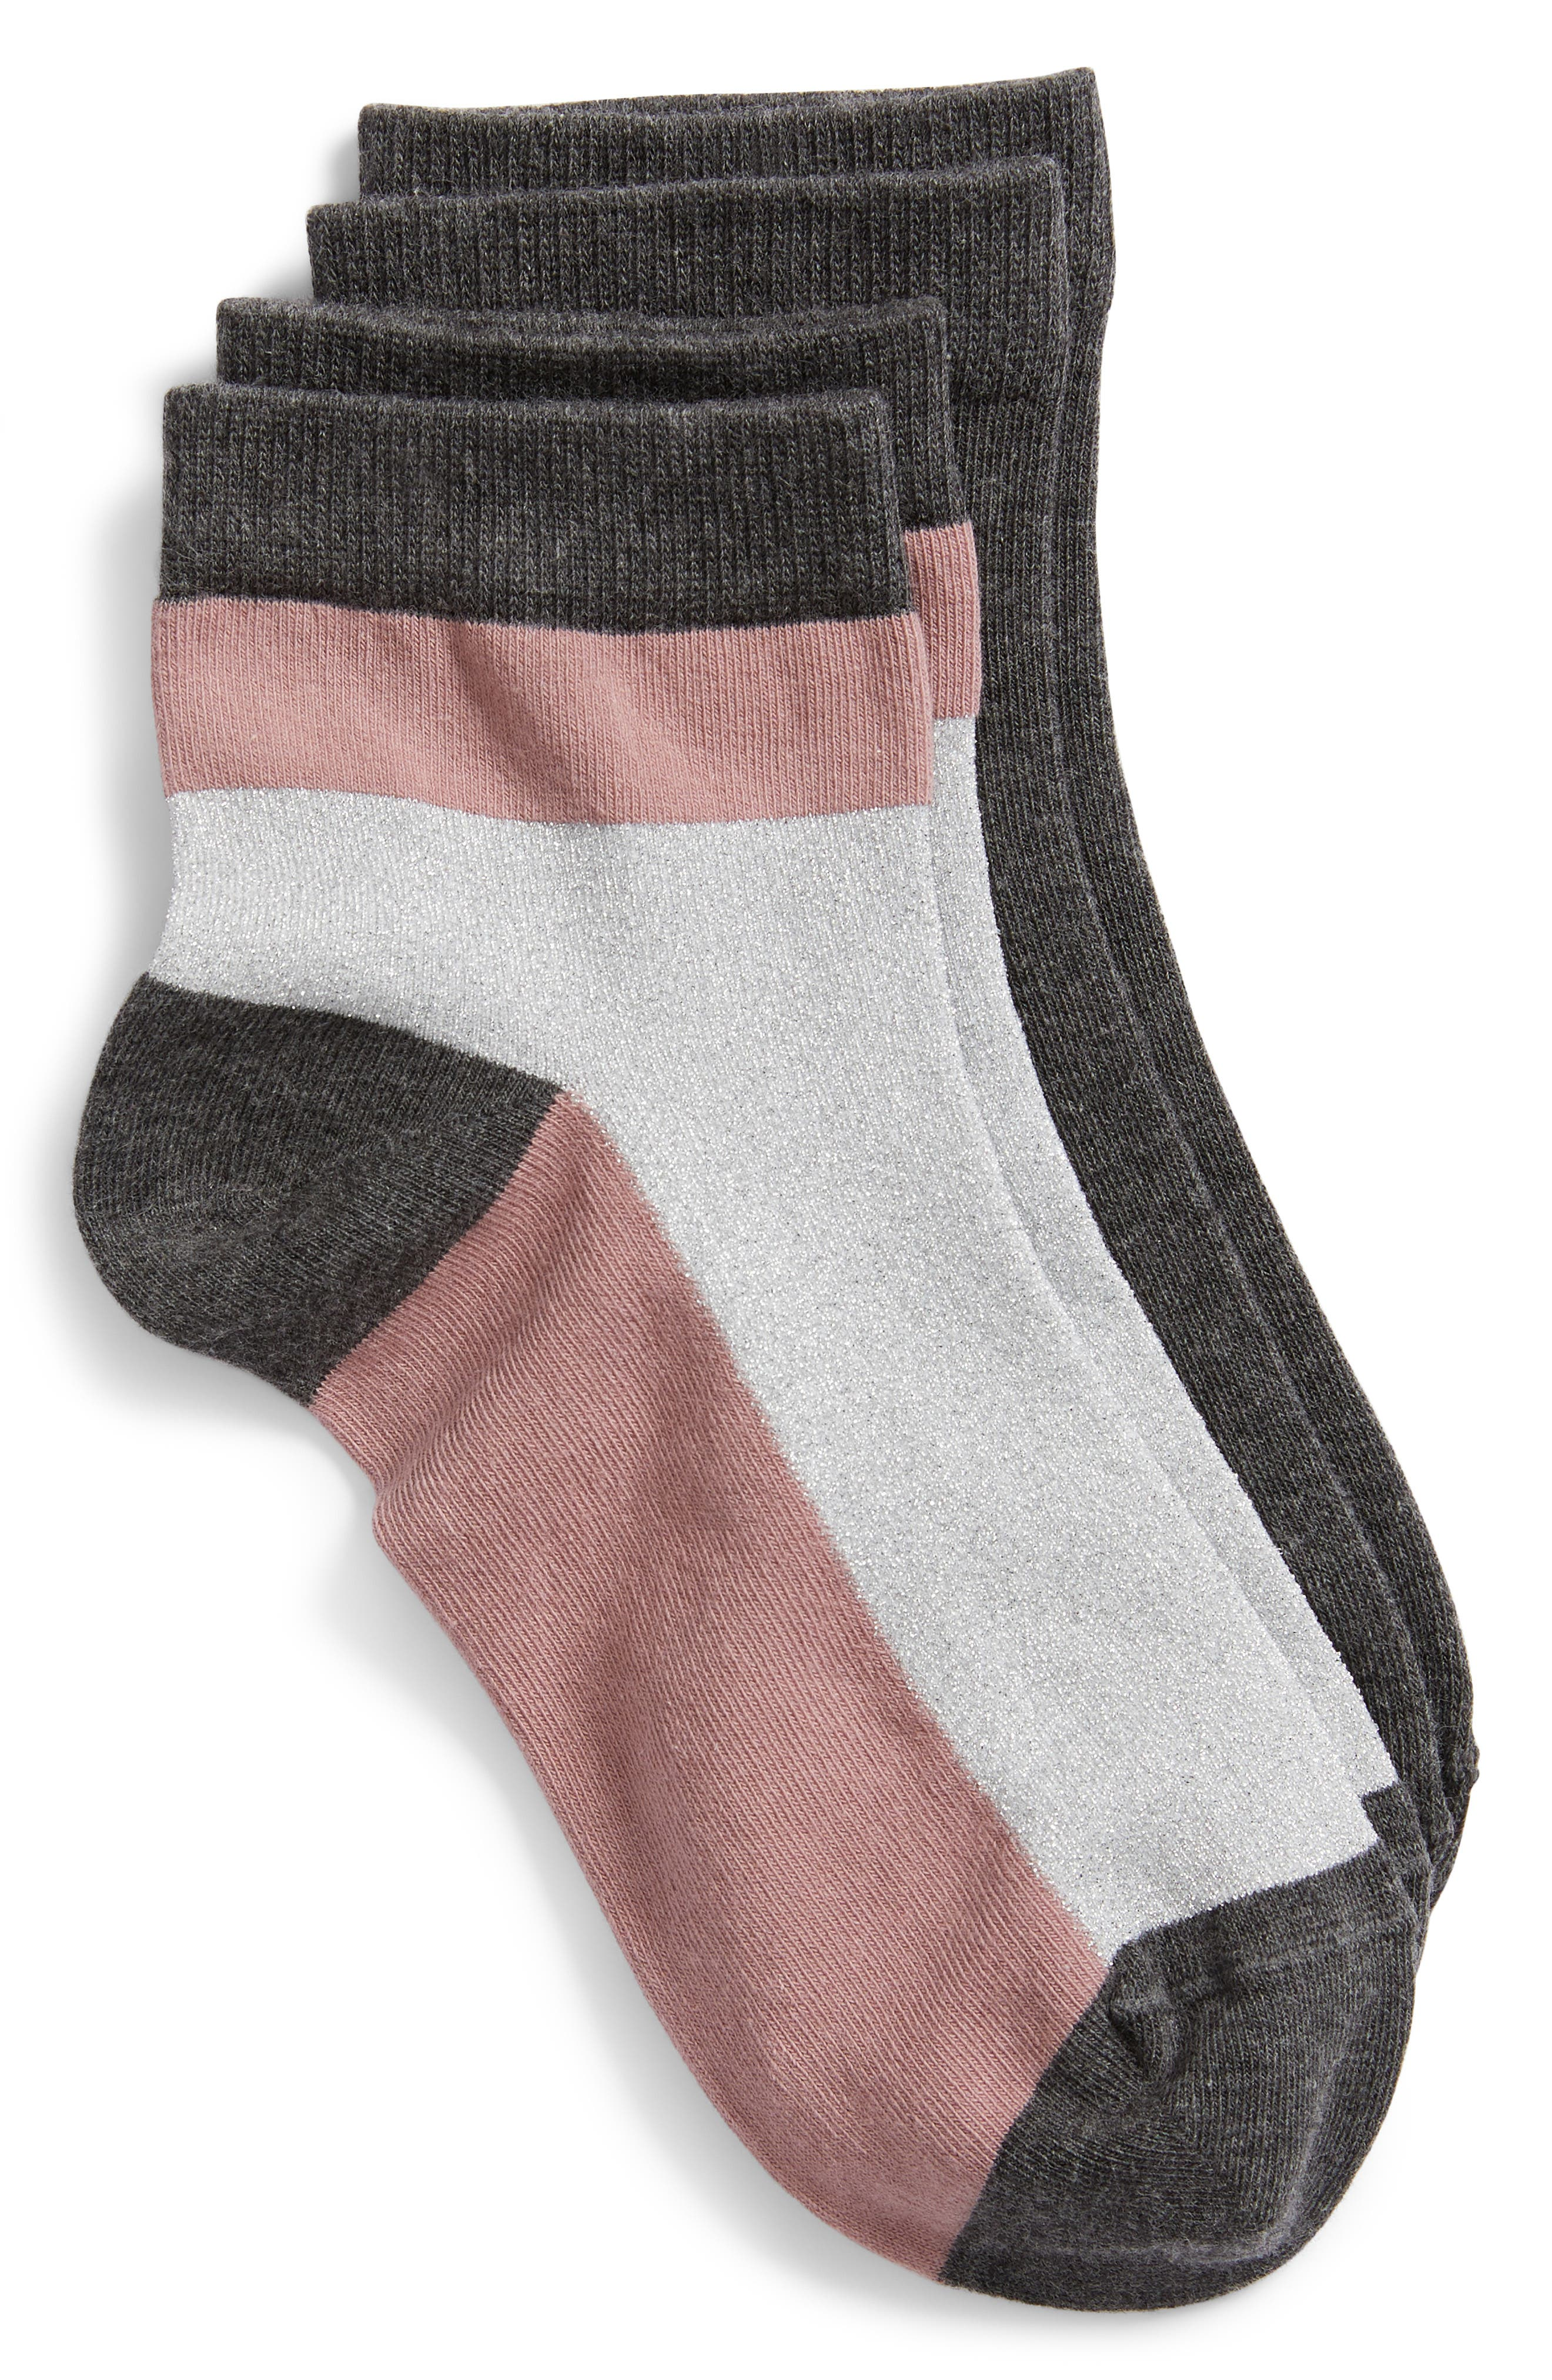 2-Pack Ankle Socks,                             Main thumbnail 1, color,                             GREY CHARCOAL MULTI